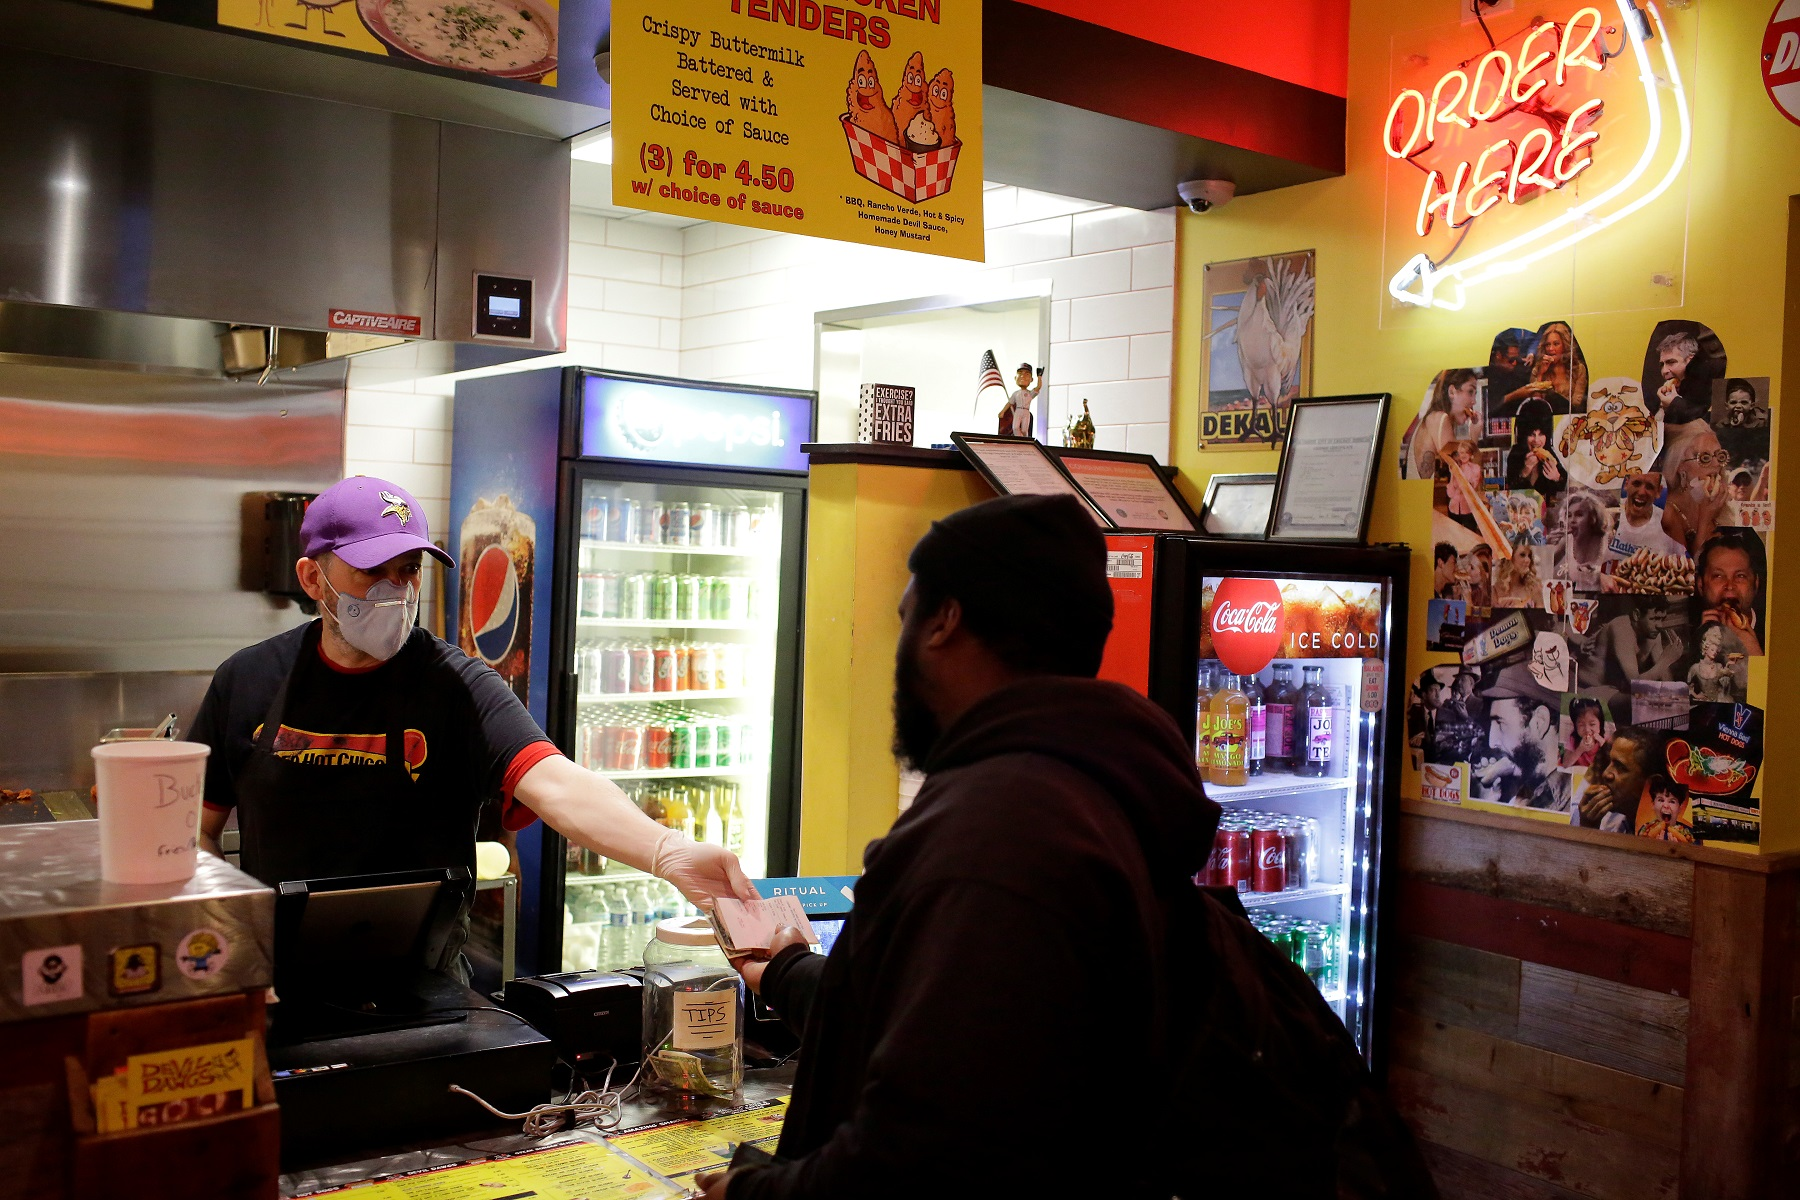 Daniel Thomas takes an order from a customer at Devil Dawgs restaurant as Illinois Governor J.B. Pritzker ordered all restaurants and bars closed at the end of the business day, as part of efforts to combat the spread of novel coronavirus, in Chicago, Illinois, U.S. March 16, 2020. REUTERS/Joshua Lott